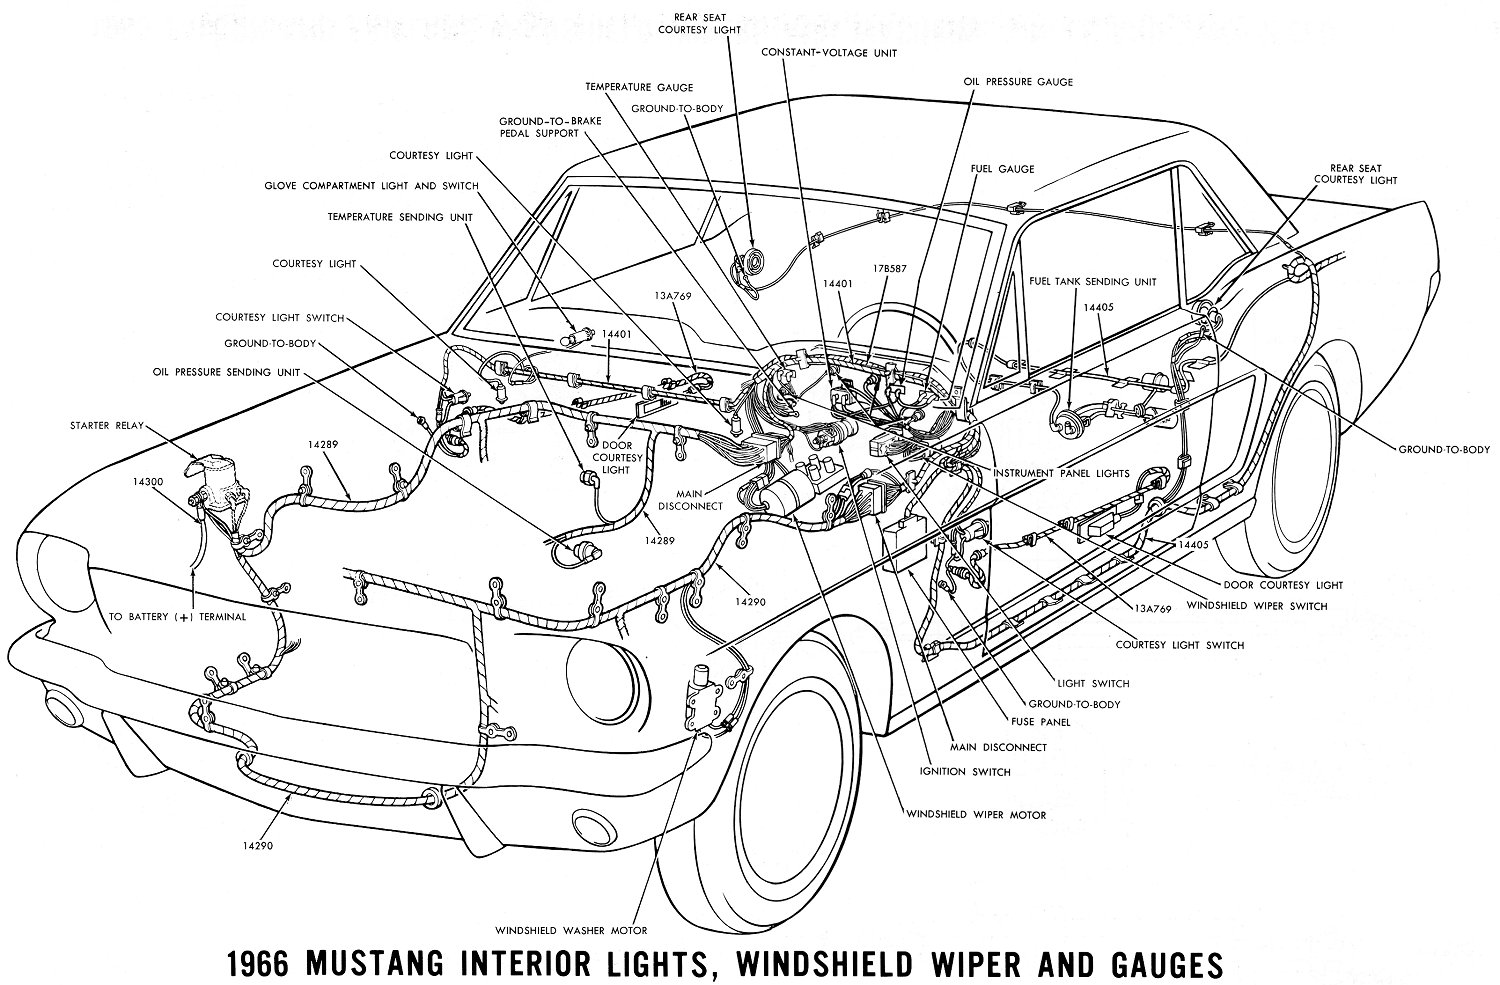 1966 Mustang Wiring Diagrams Average Joe Restoration Light Switch Schematic For Interior Lights Windshield Wiper And Gauges